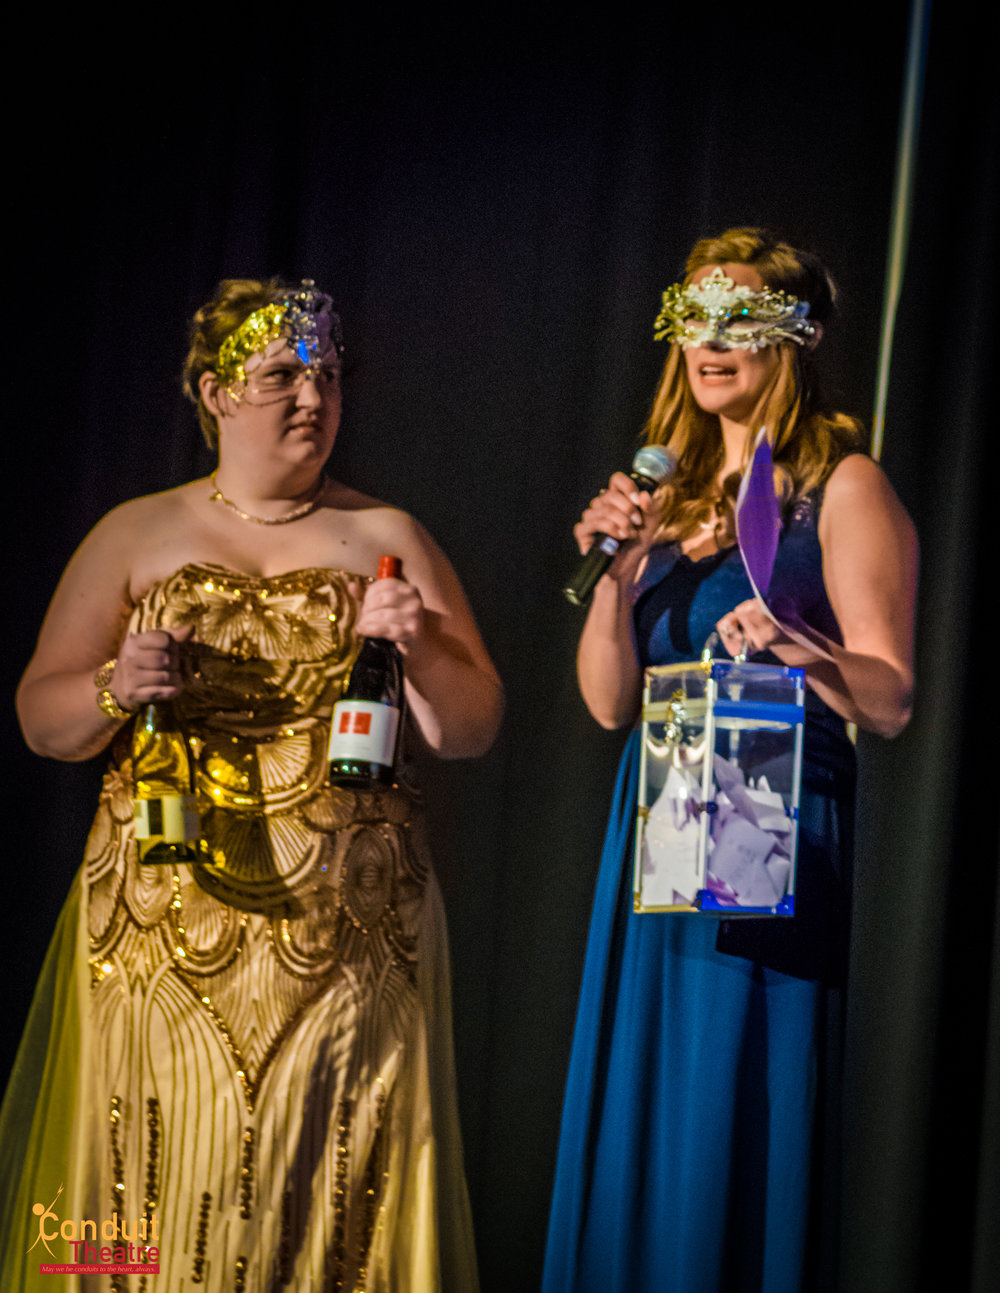 Becca Cruger and Aubrey Schulz-Barney of the Greater Grand Forks Young Professionals drawing for prizes at Midnight Masquerade.